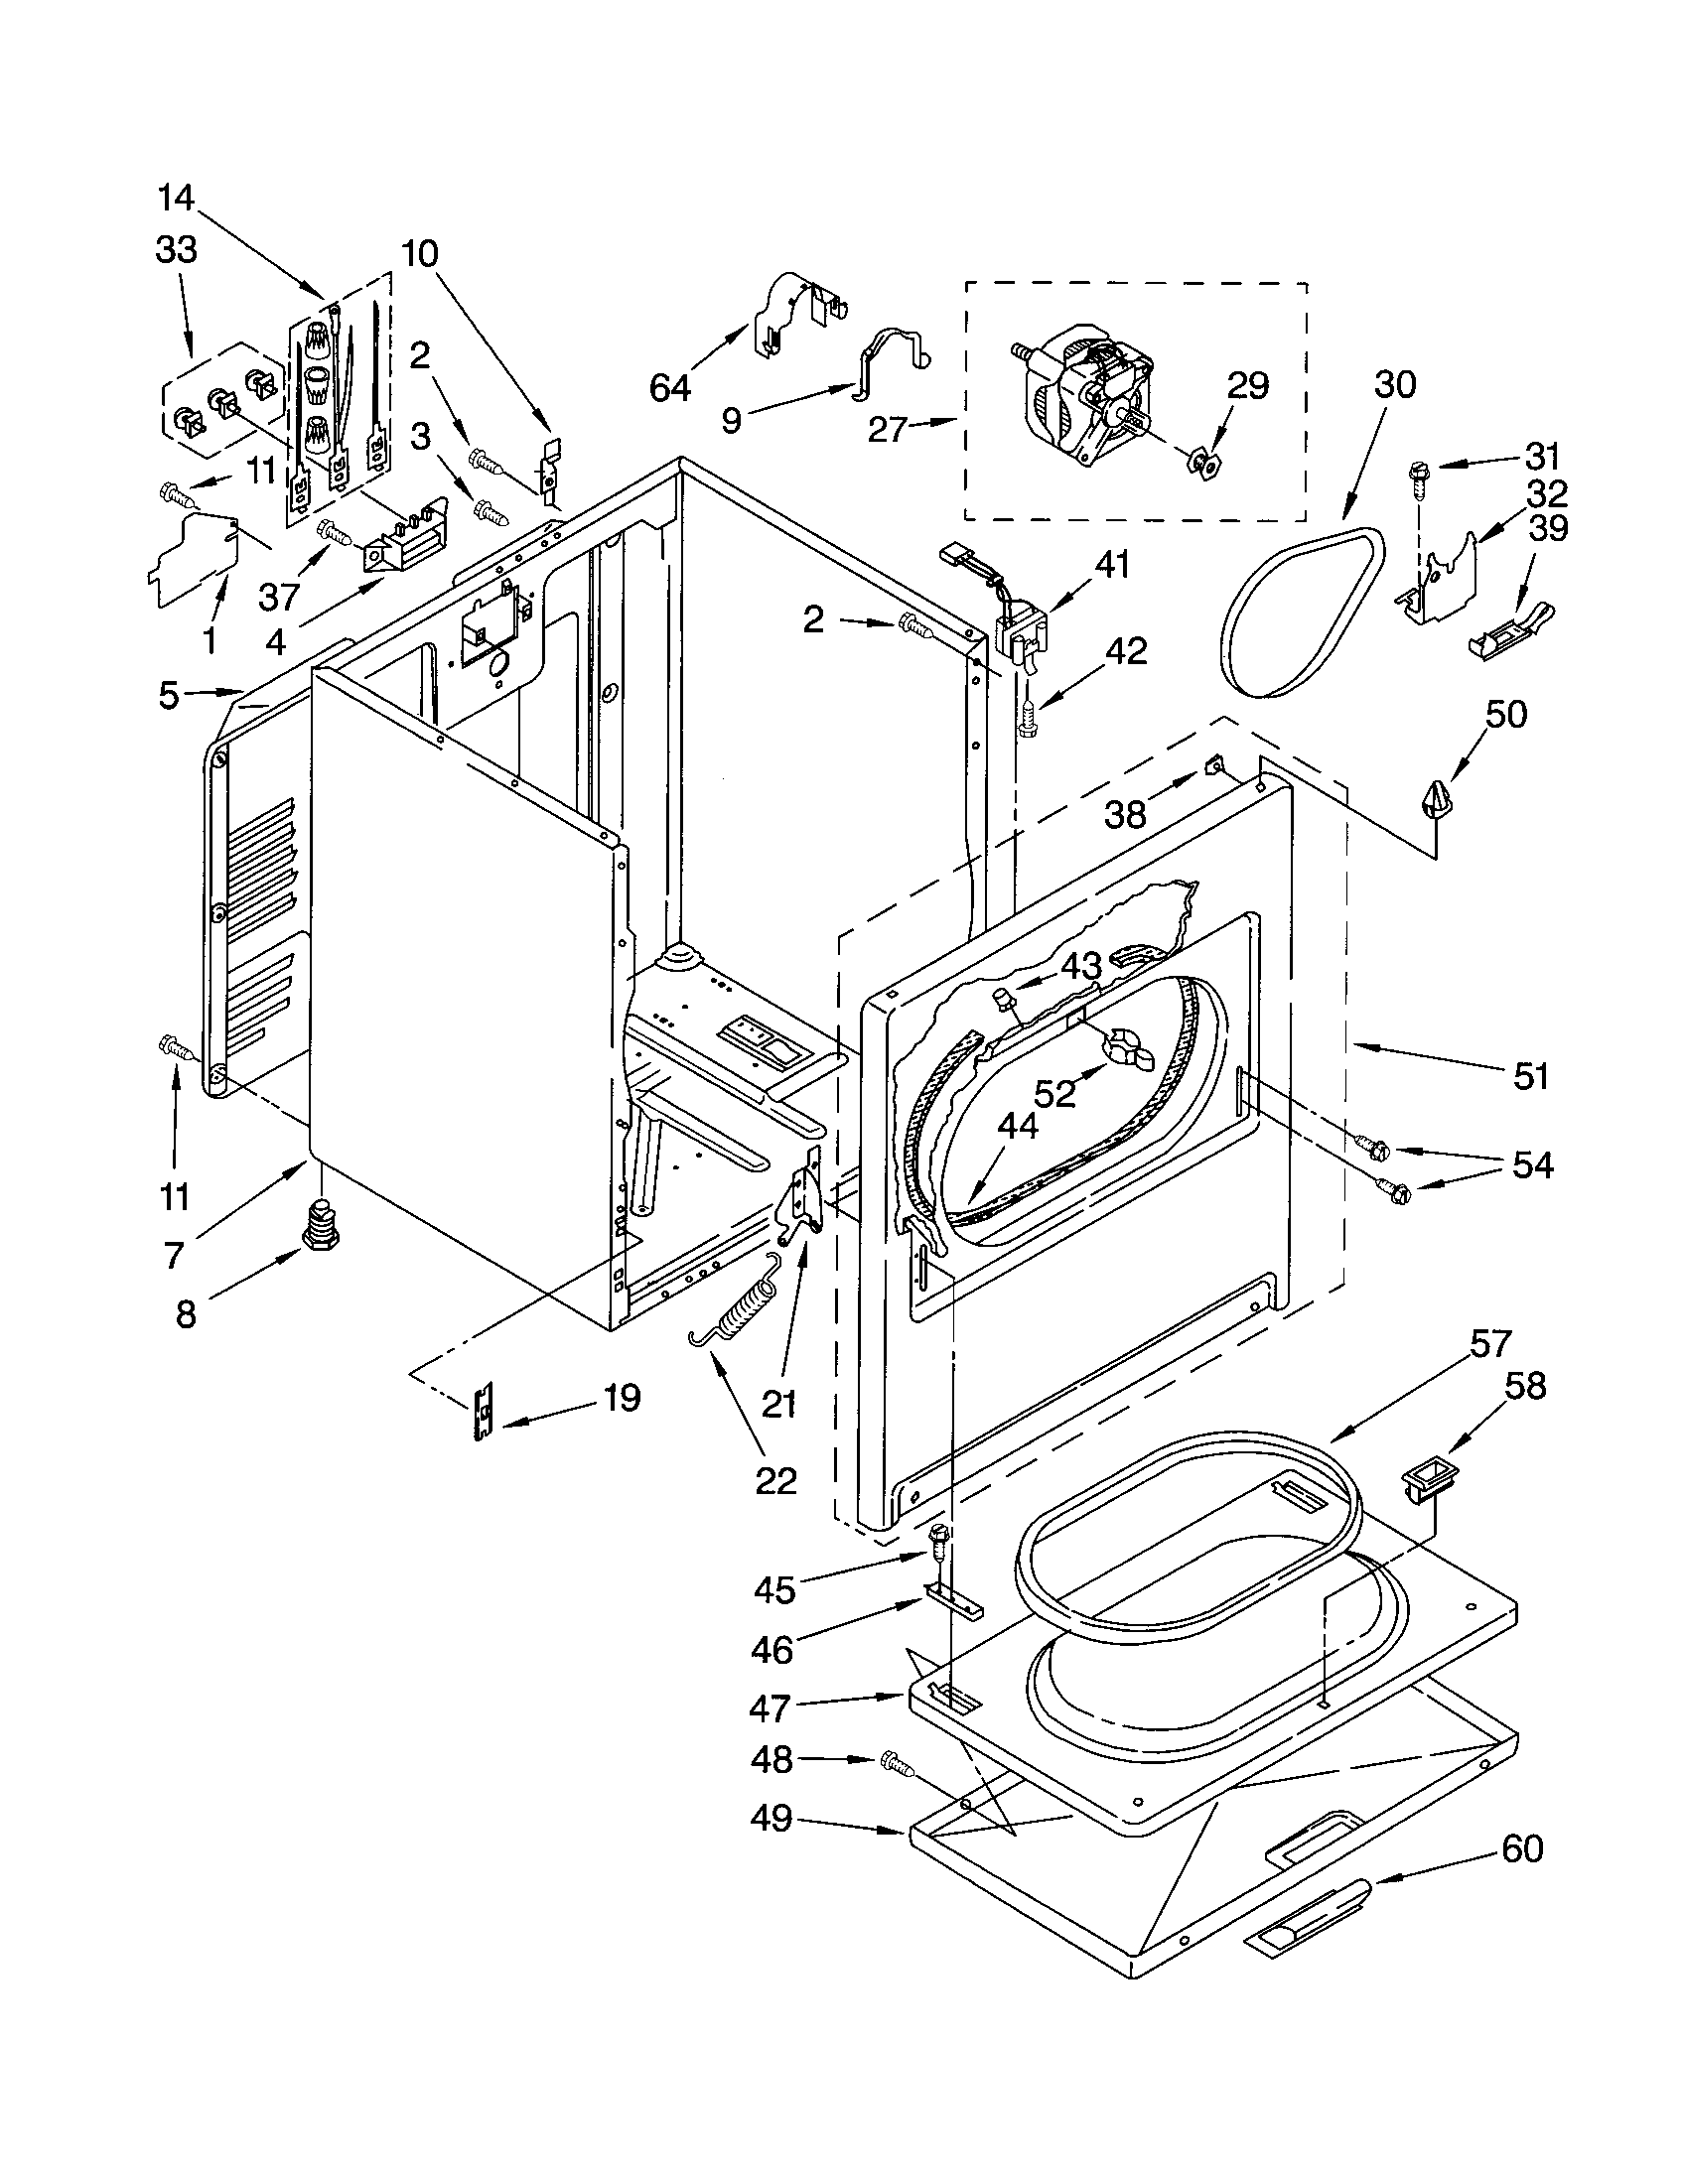 kenmore dryer model 110 diagram